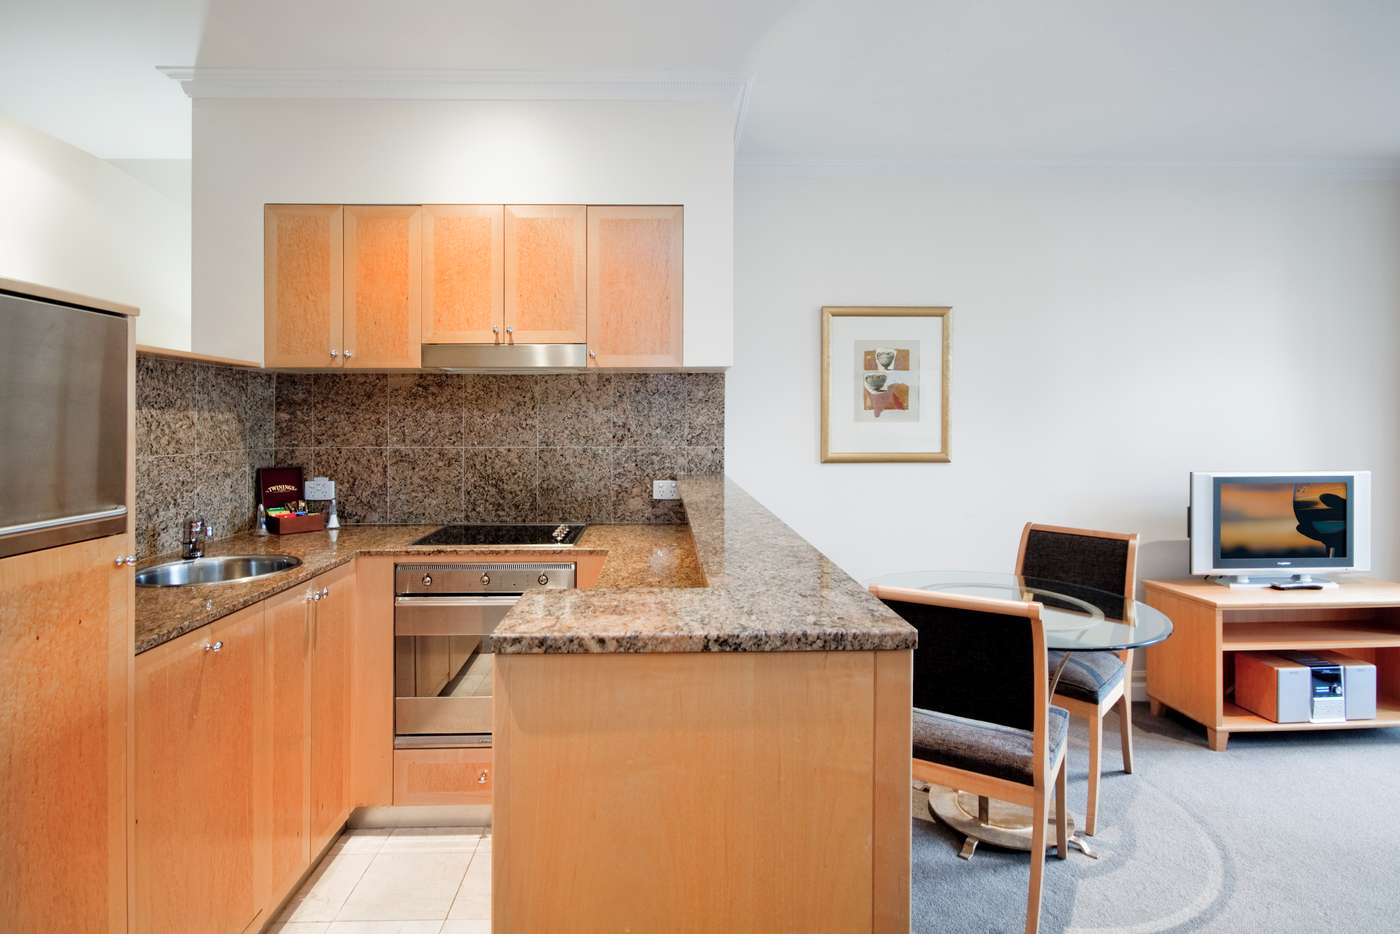 Main view of Homely apartment listing, 2 Bond St, Sydney NSW 2000